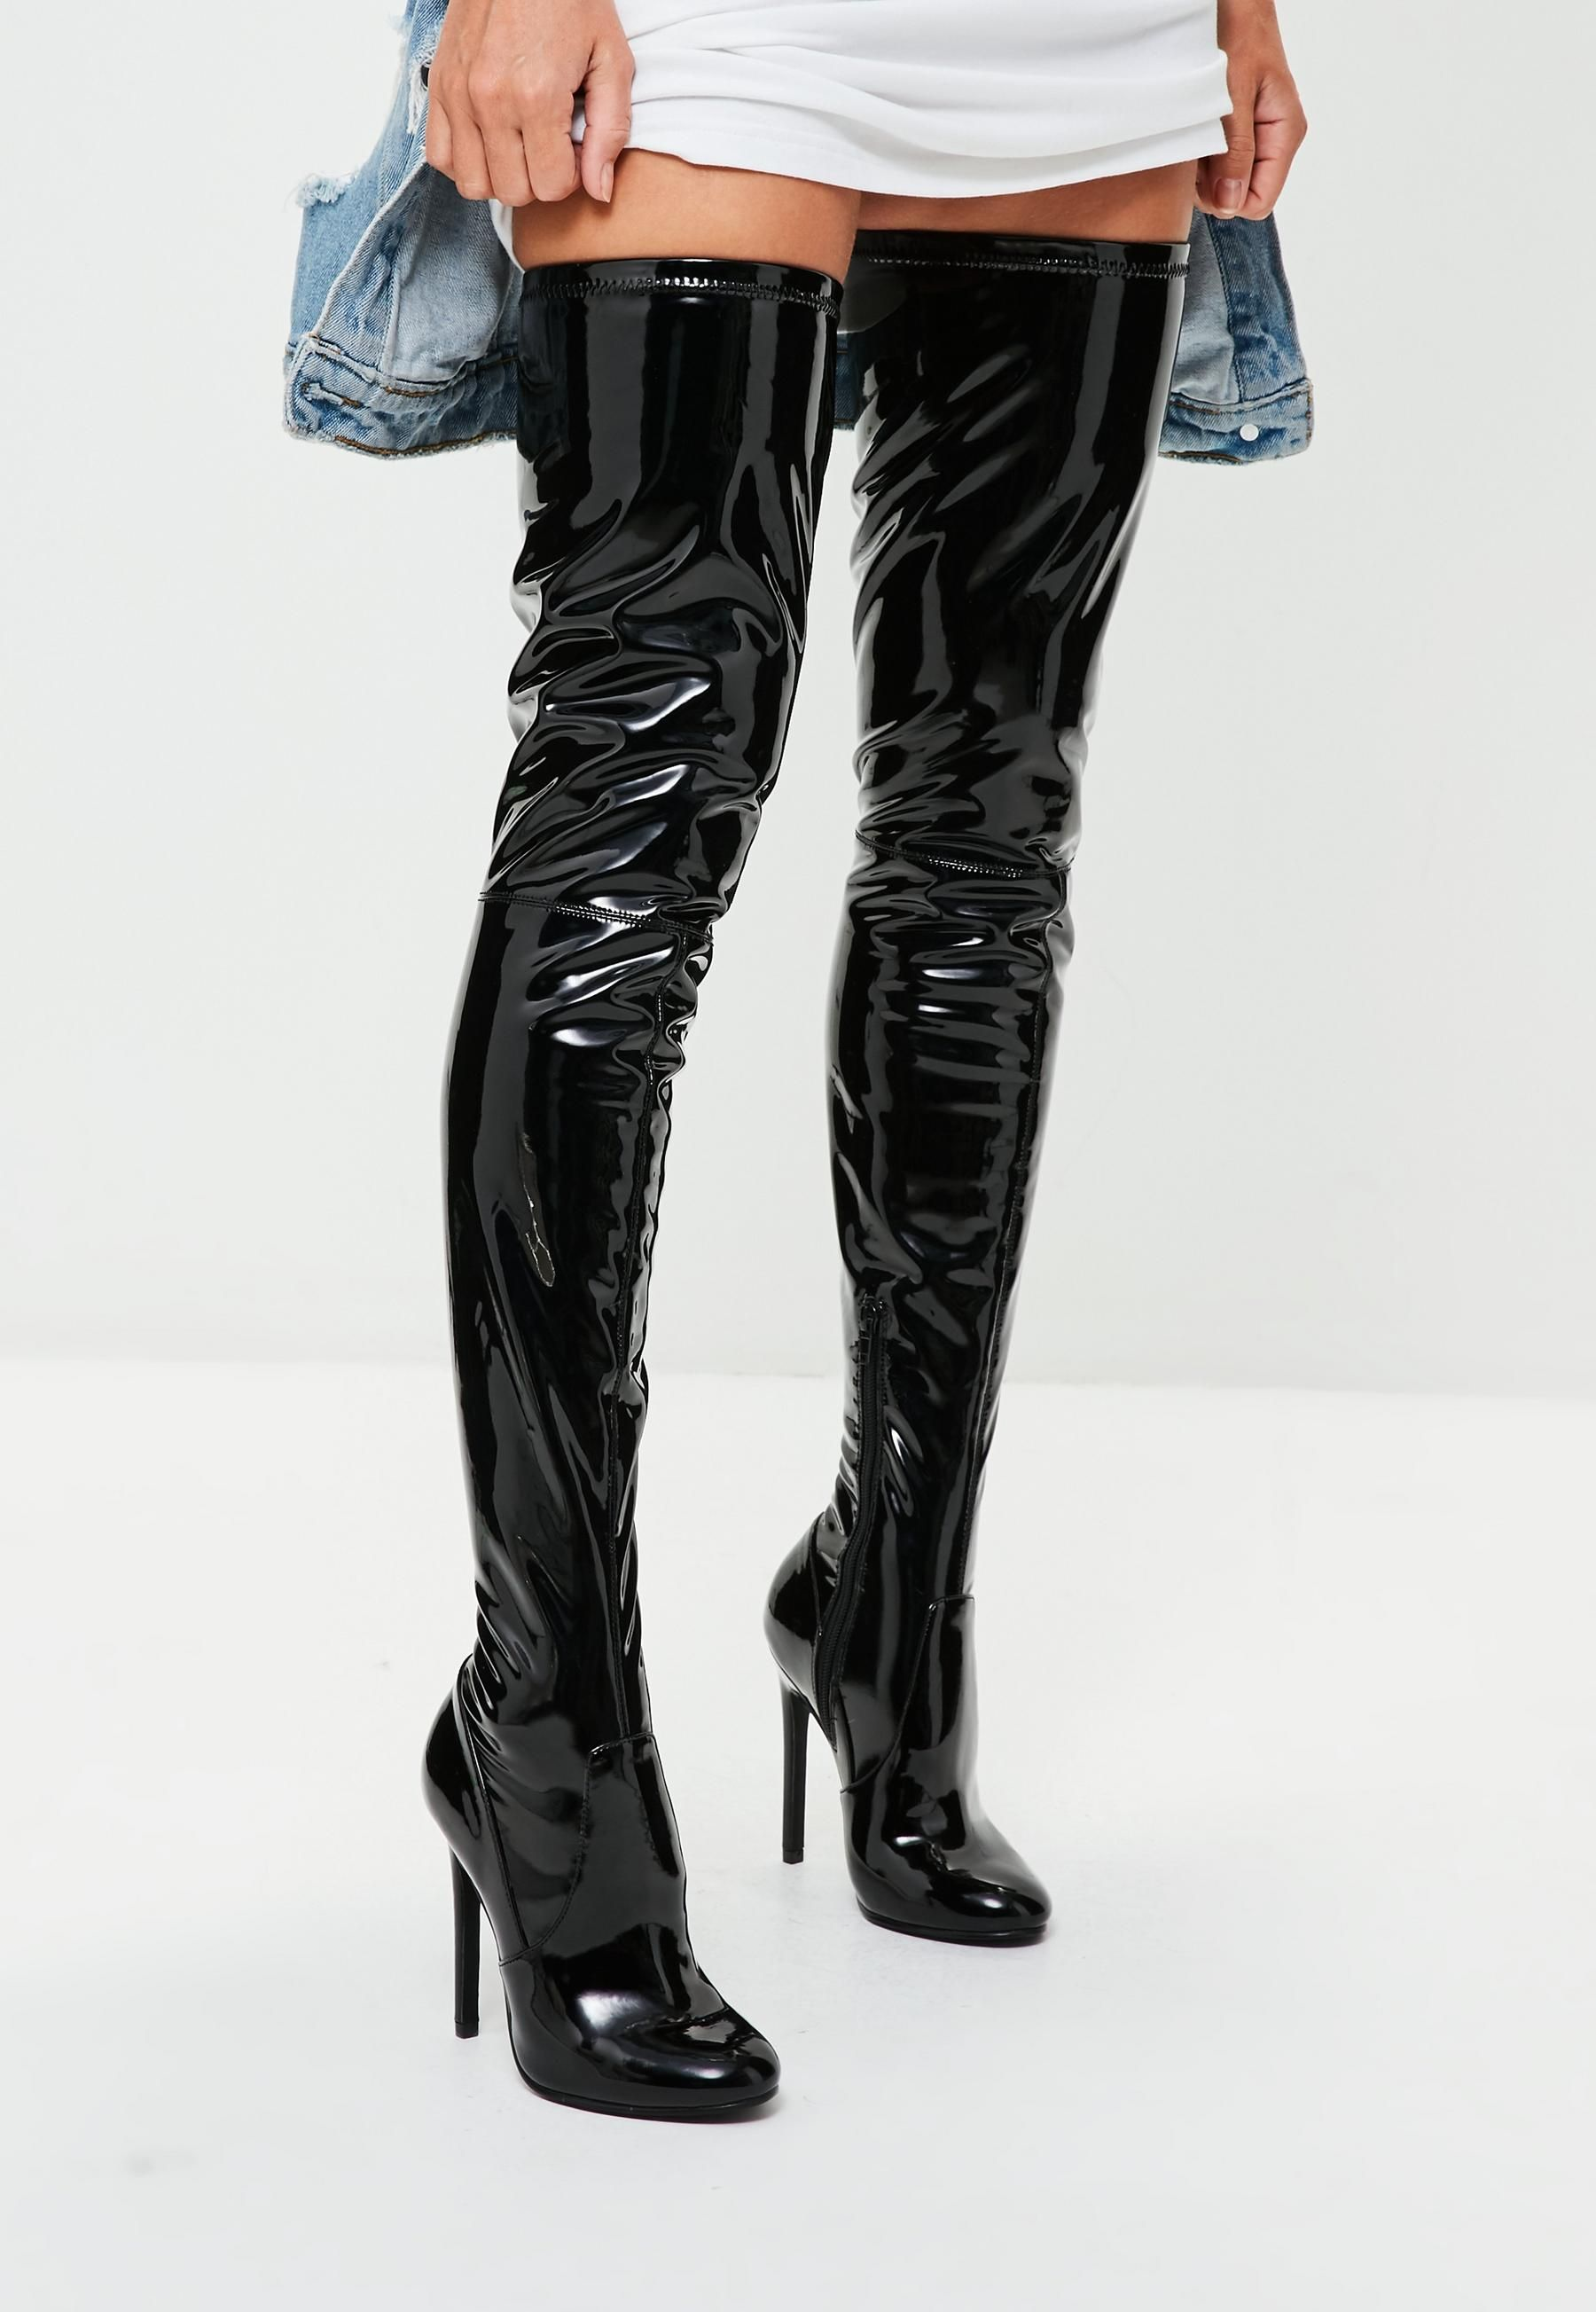 1eaa4aad6b2 Missguided - Black Vinyl Over The Knee Boots in 2019